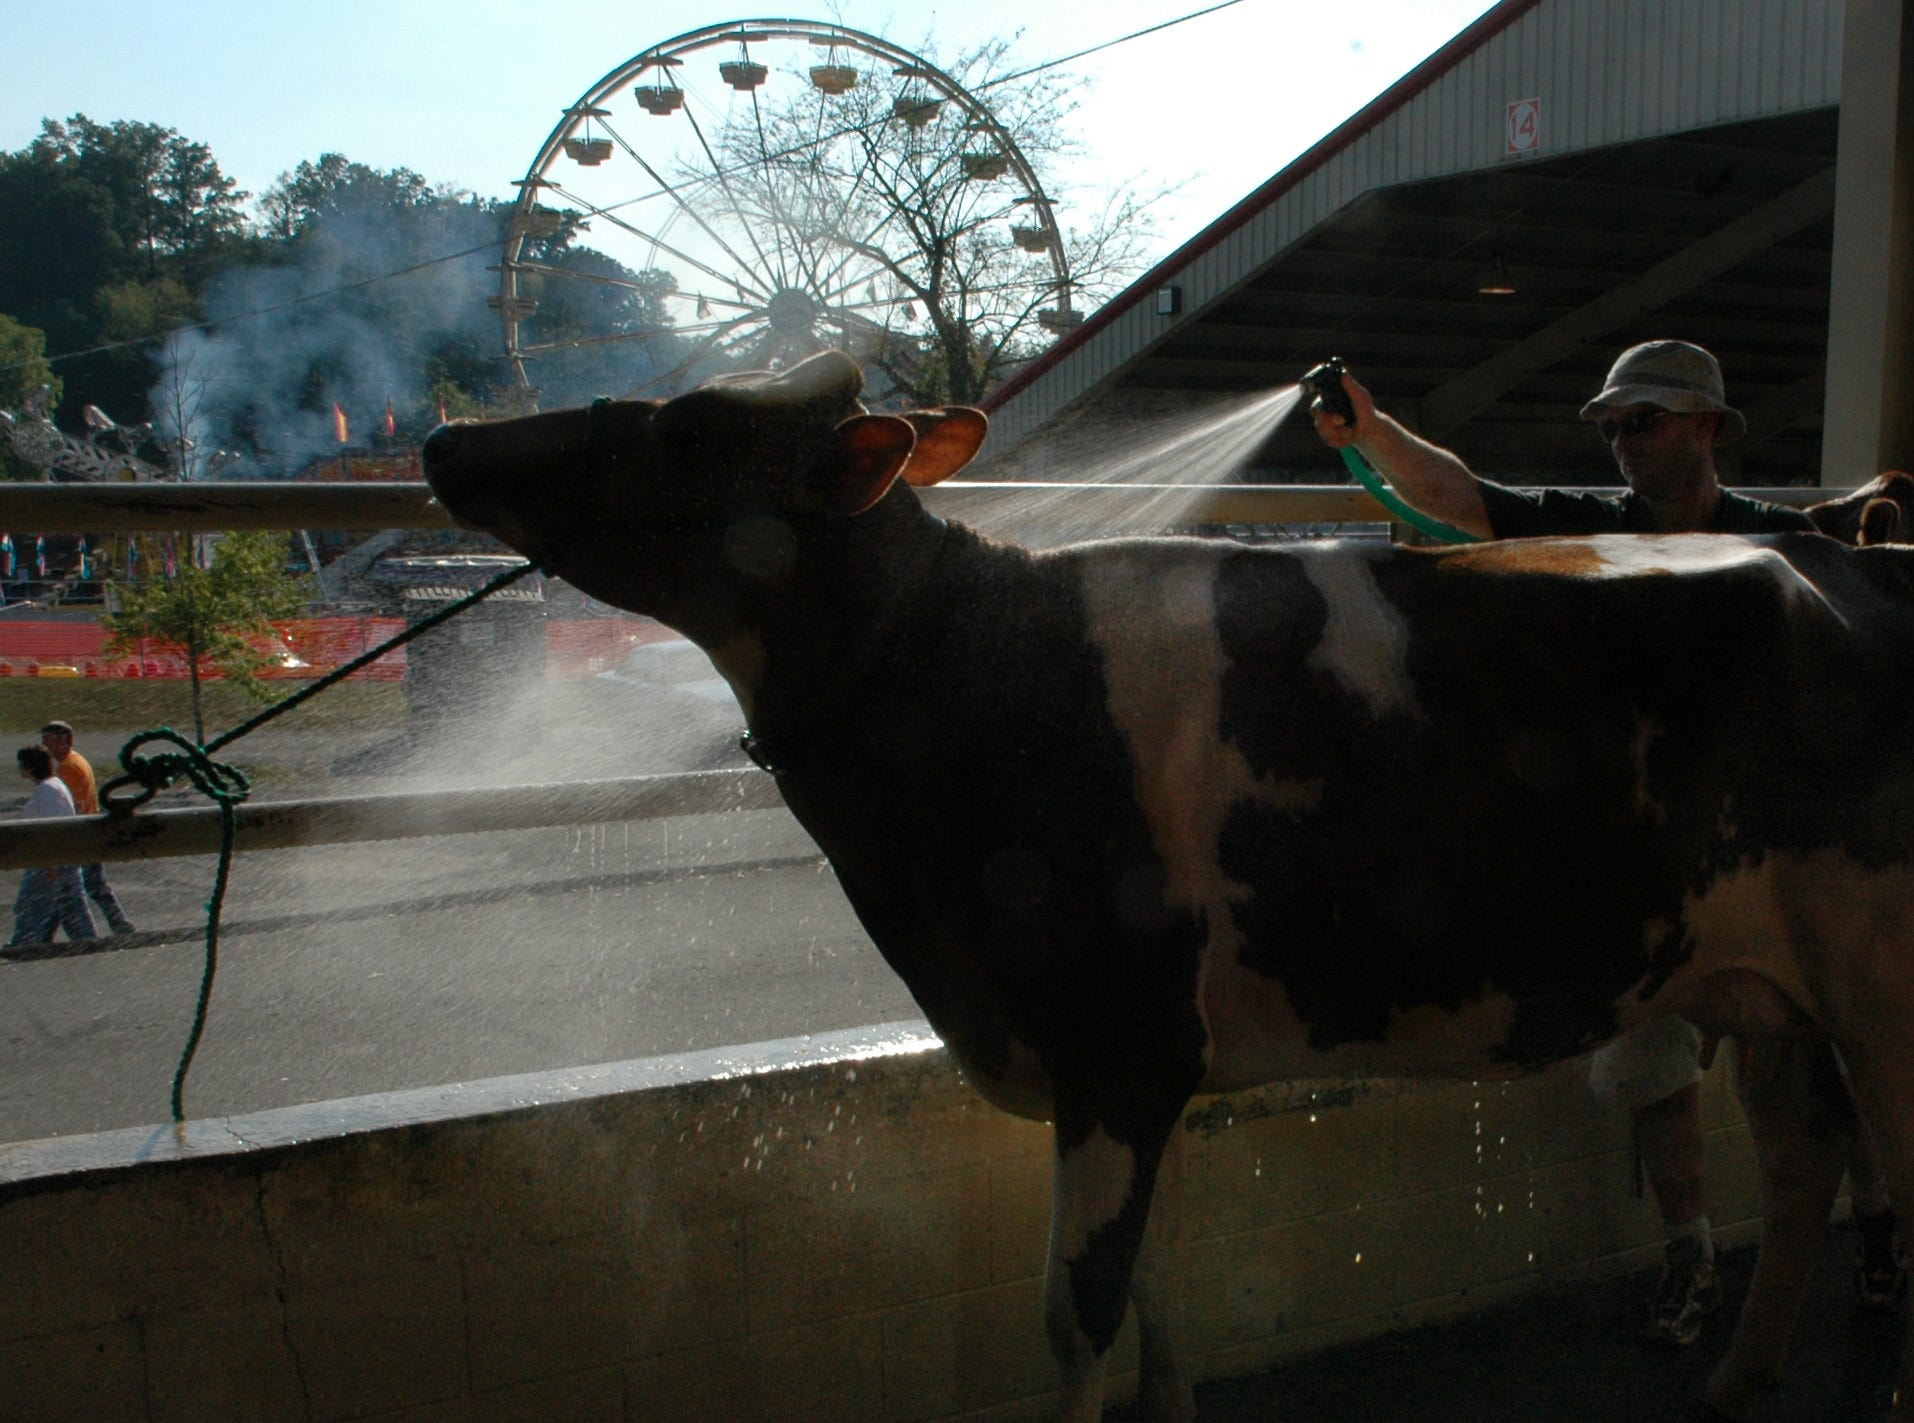 David Croshaw of Parksville, Ky., washes one of his cows named Ivy as people start to wander into Chilhowee Park during the opening day of the Tennessee Valley Fair Friday in East Knoxville in 2005.